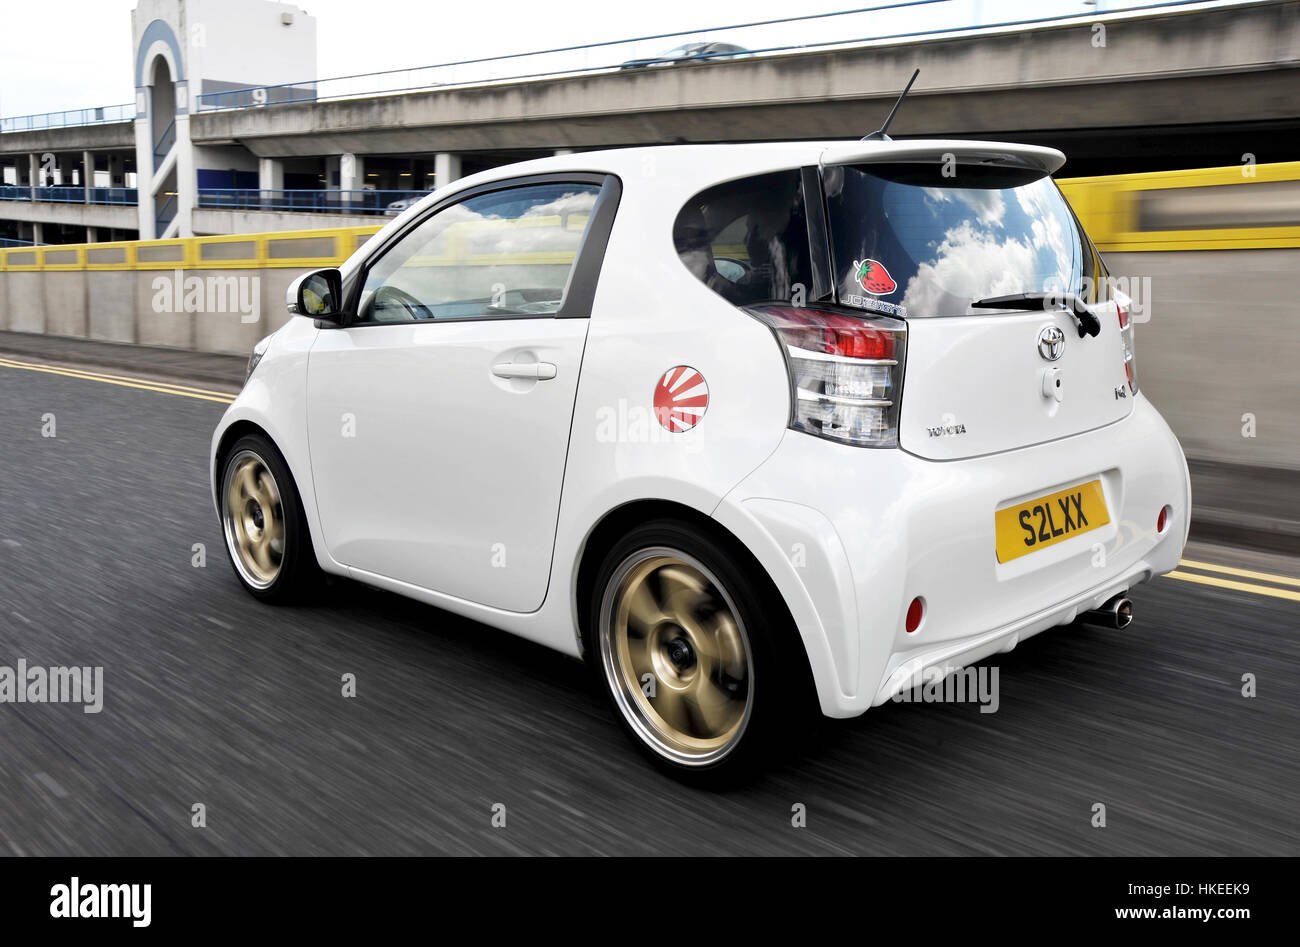 toyota iq modification modified toyota iq fast car toyota iq super tuned hong kong youtube. Black Bedroom Furniture Sets. Home Design Ideas